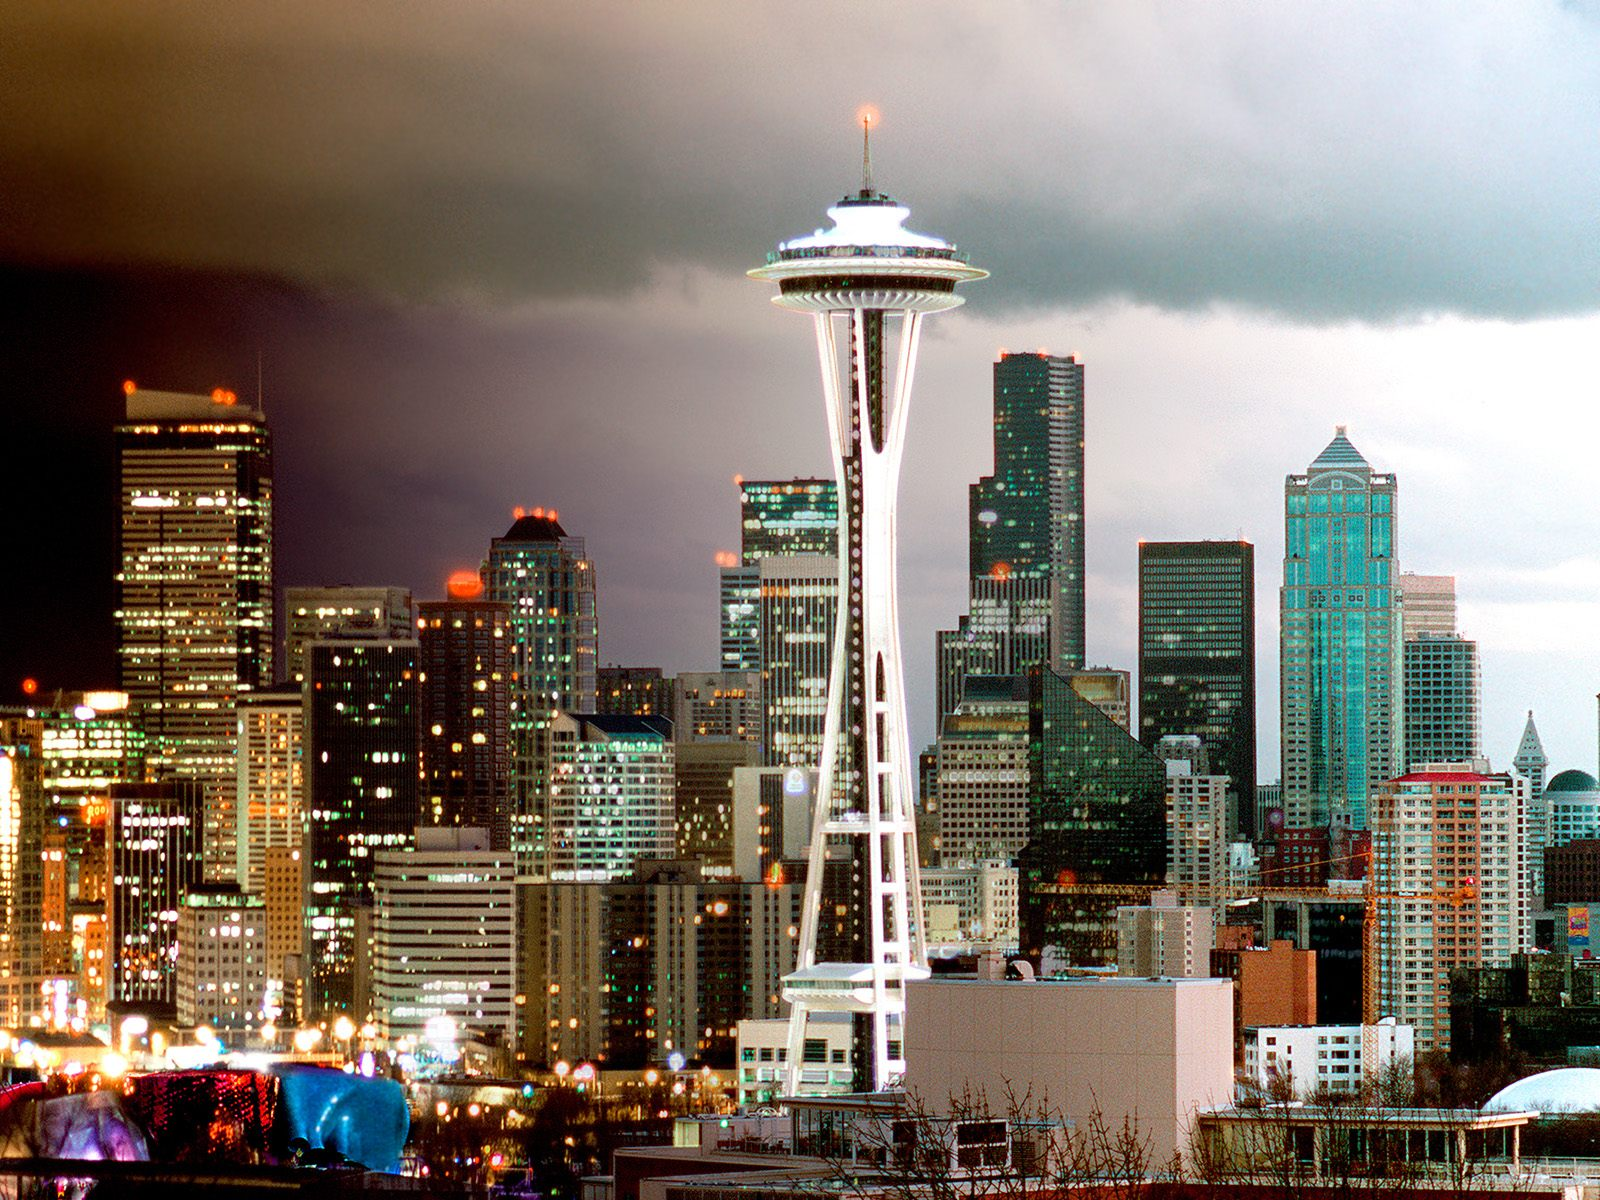 35 Hd Seattle Skyline Wallpapers On Wallpapersafari